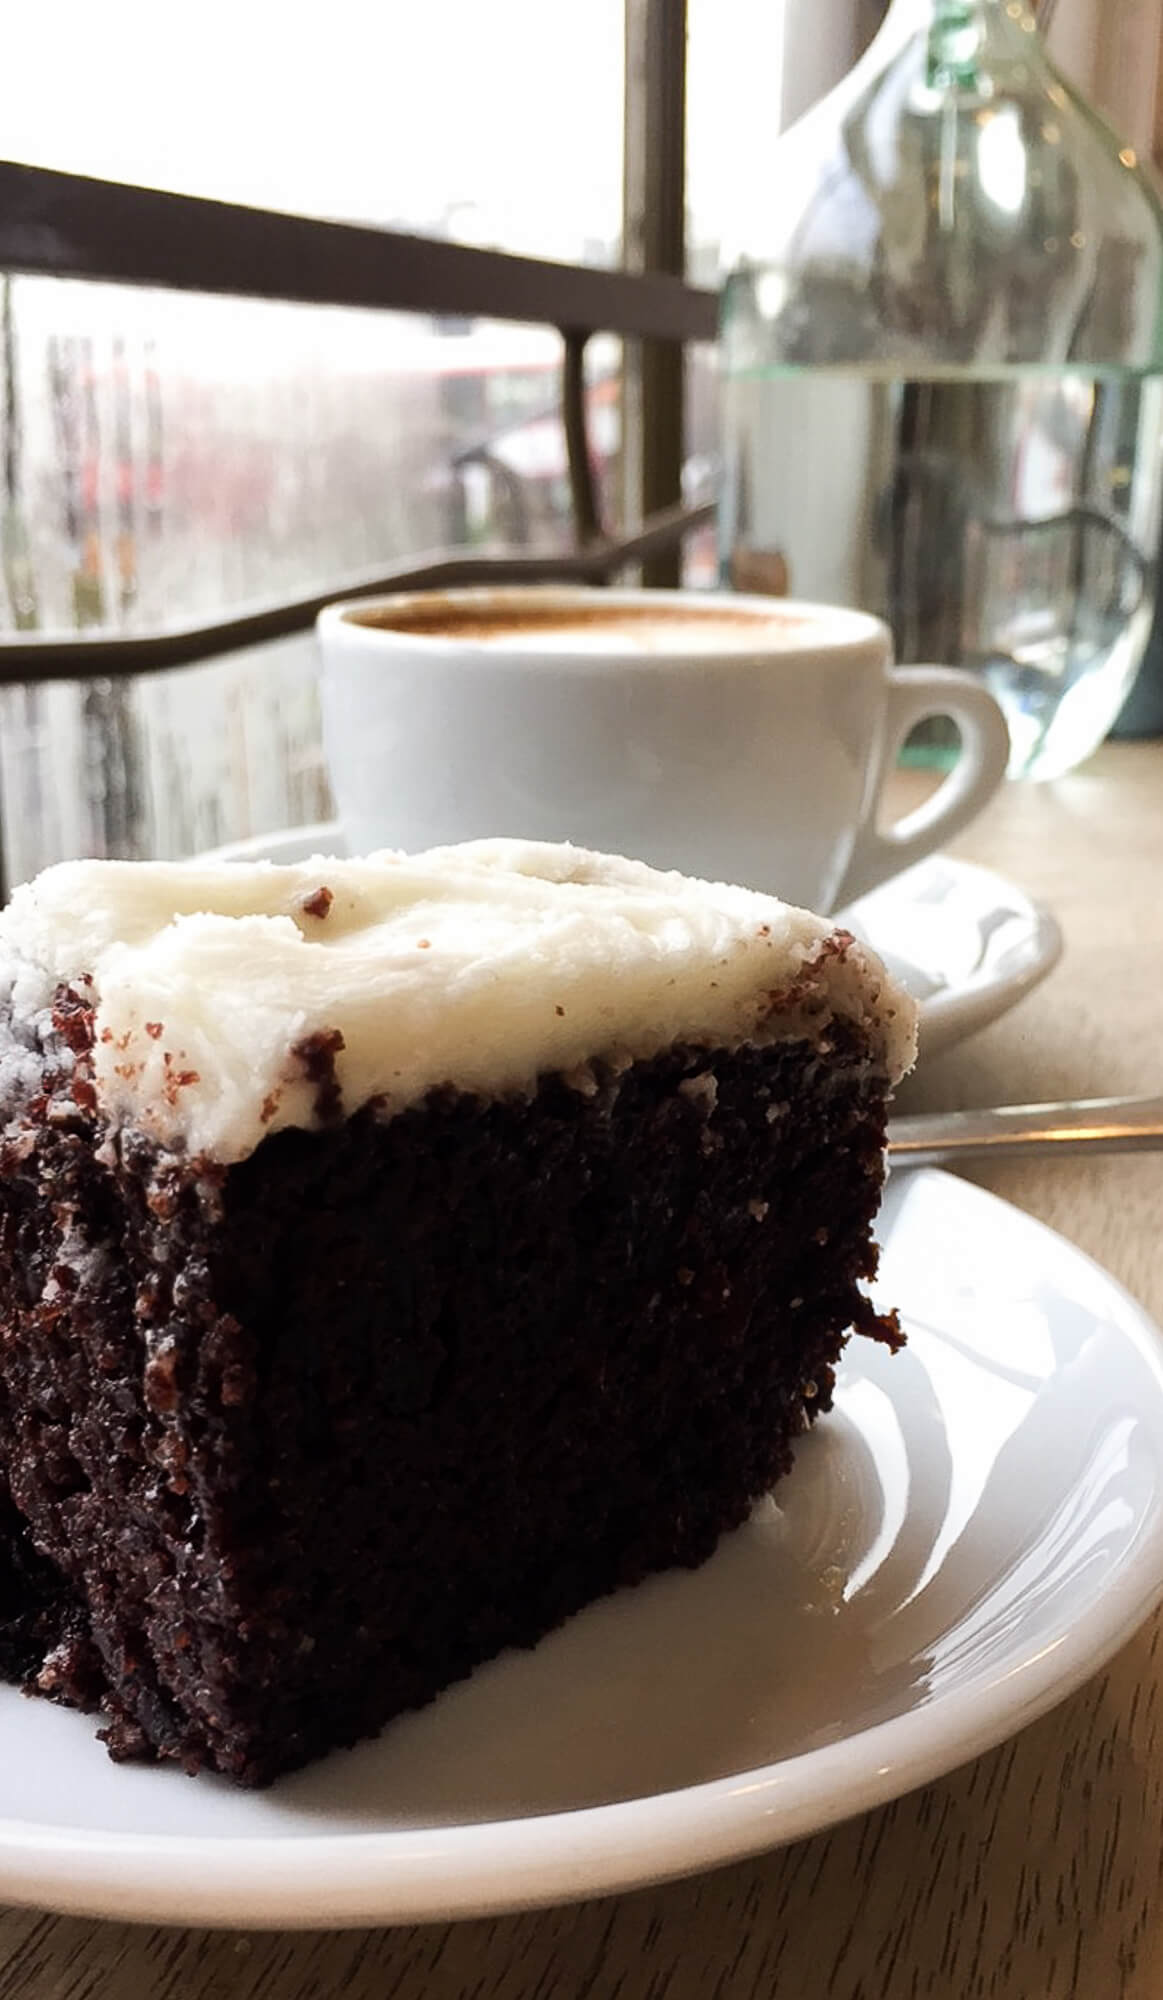 Luscious Guinness cake from St David Coffee House in Forest Hill.